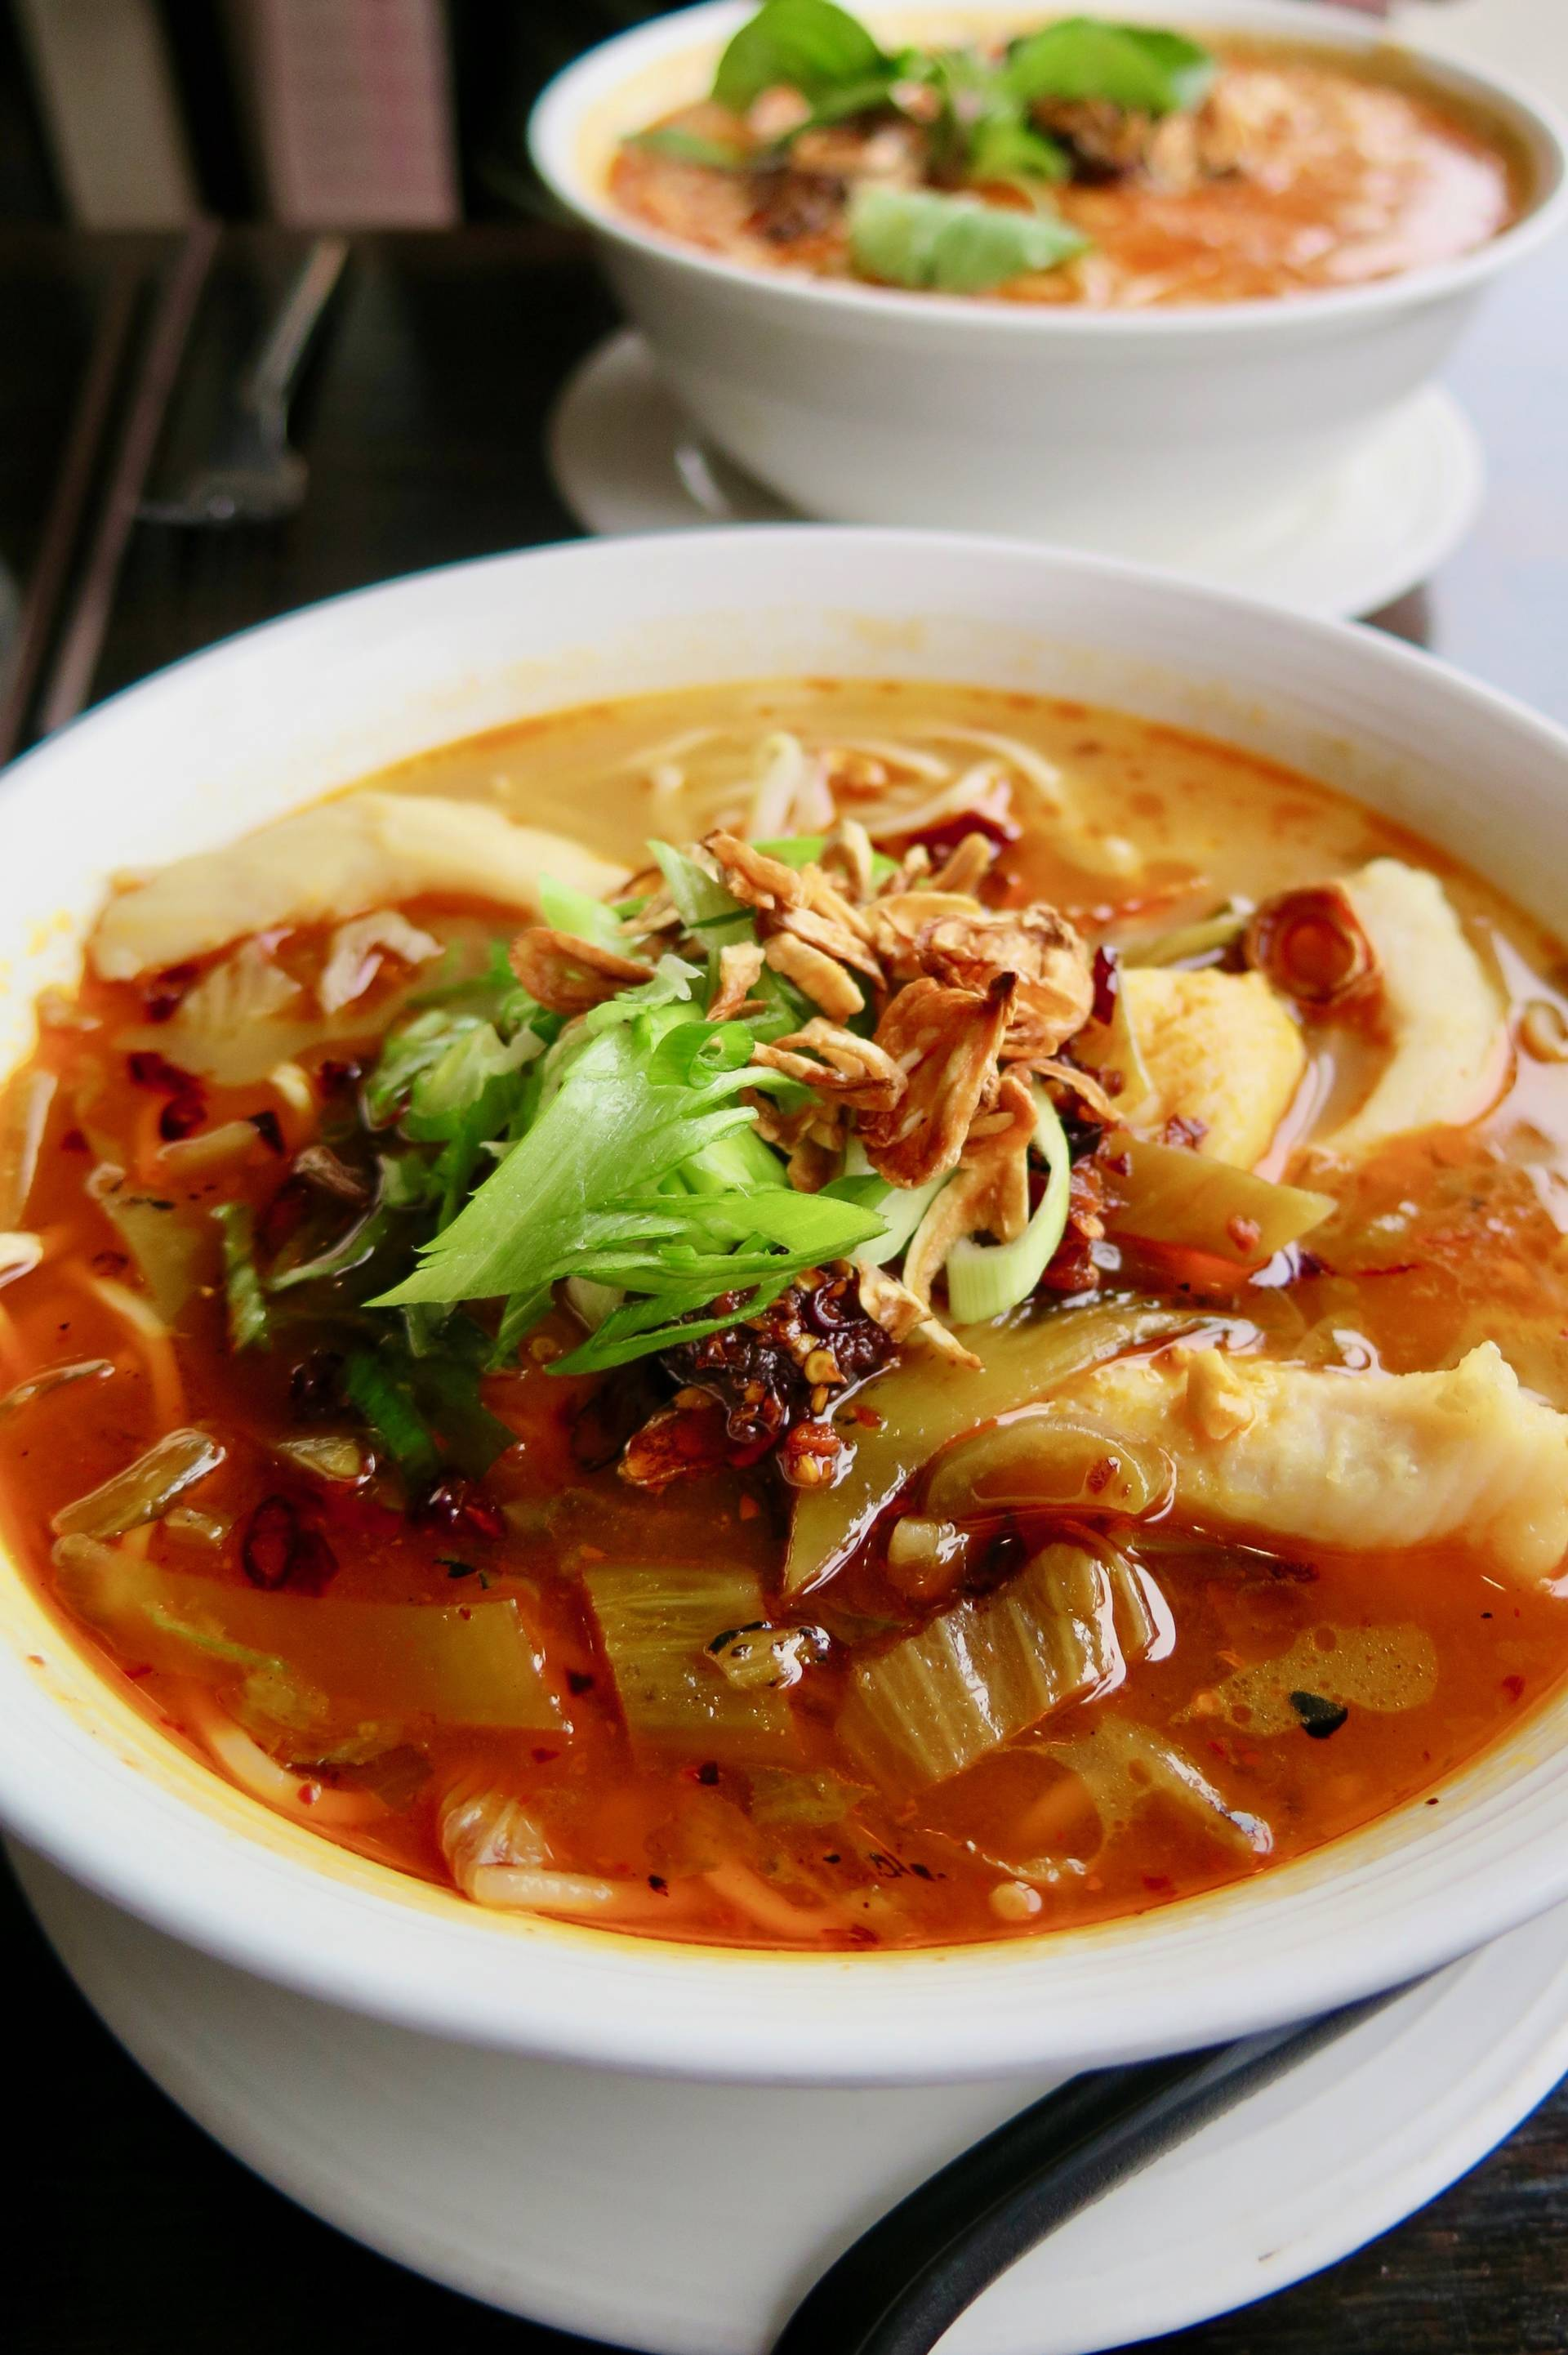 Warm up your body (and your face) with the Sichuan sole ramen at Tuezday Noodz Day.